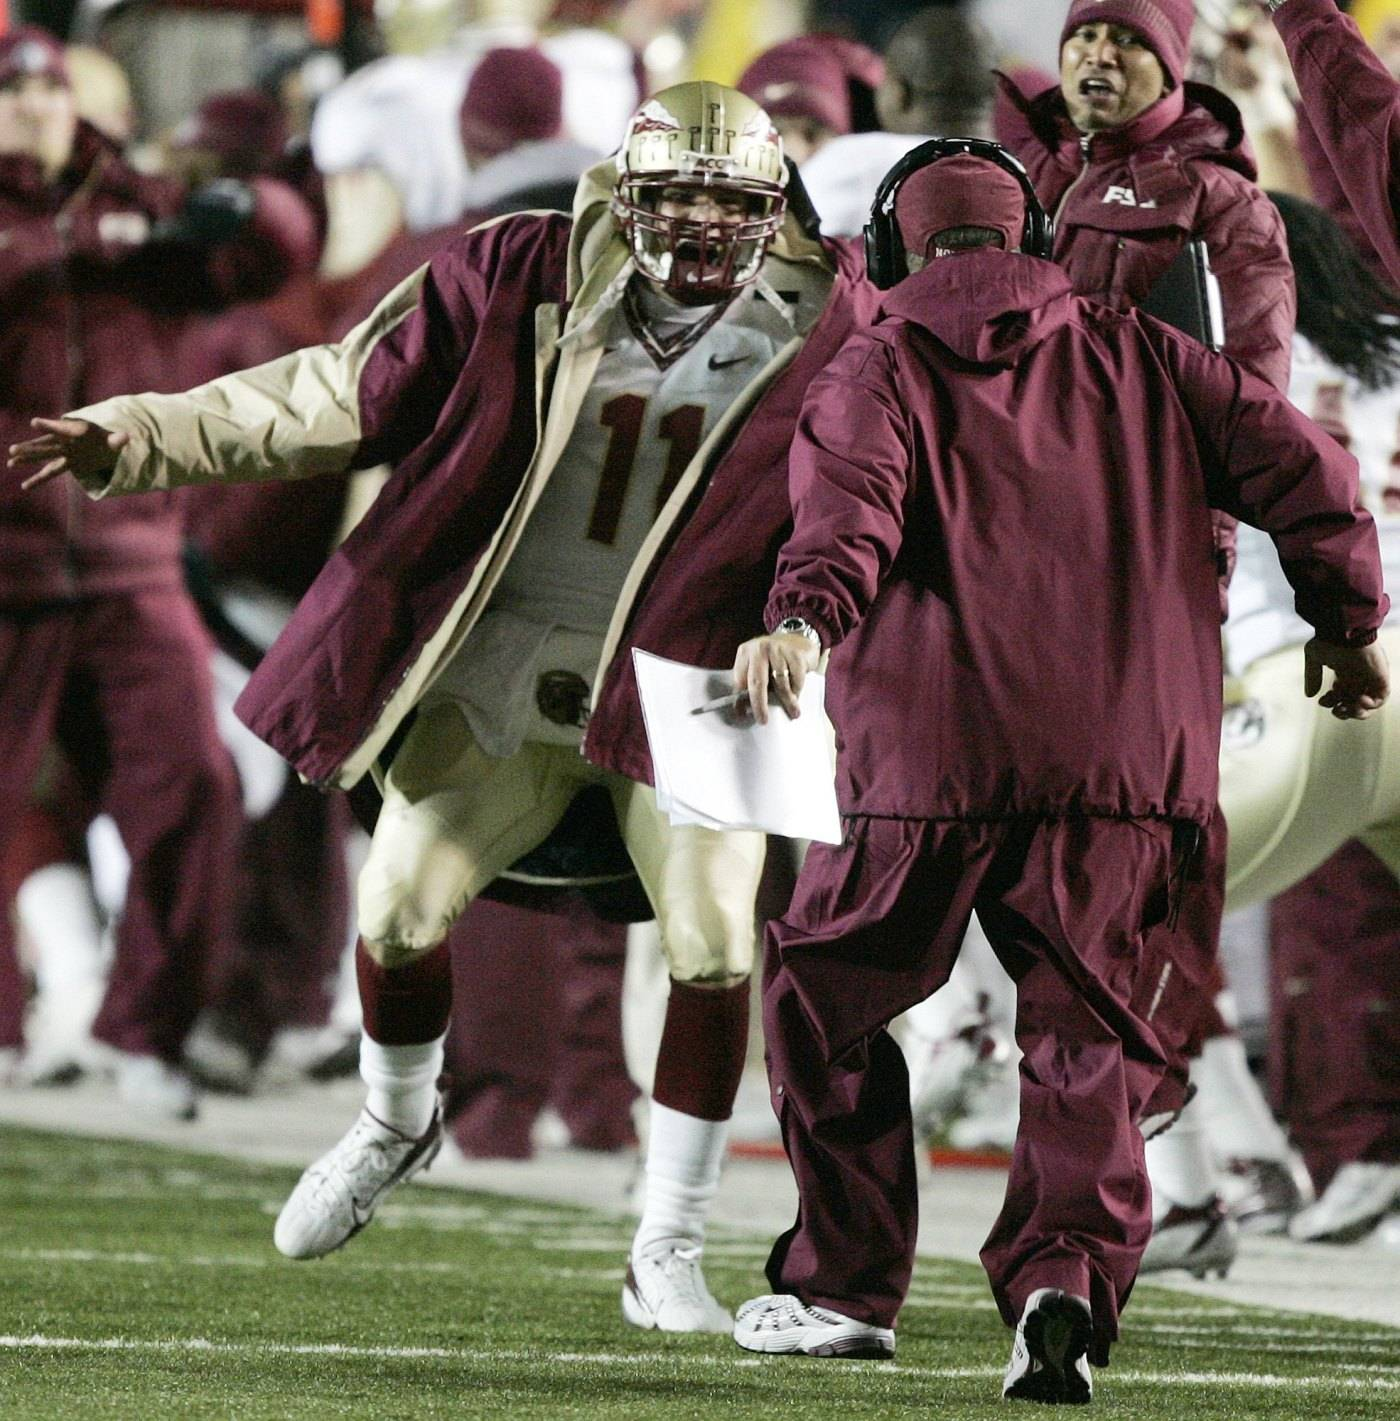 Florida State quarterback Drew Weatherford (11) celebrates on the sidelines after a Florida State interception and touchdown in the fourth quarter of a college football game against Boston College, Saturday, Nov. 3, 2007, in Boston. Florida State won 27-17. (AP Photo/Michael Dwyer)